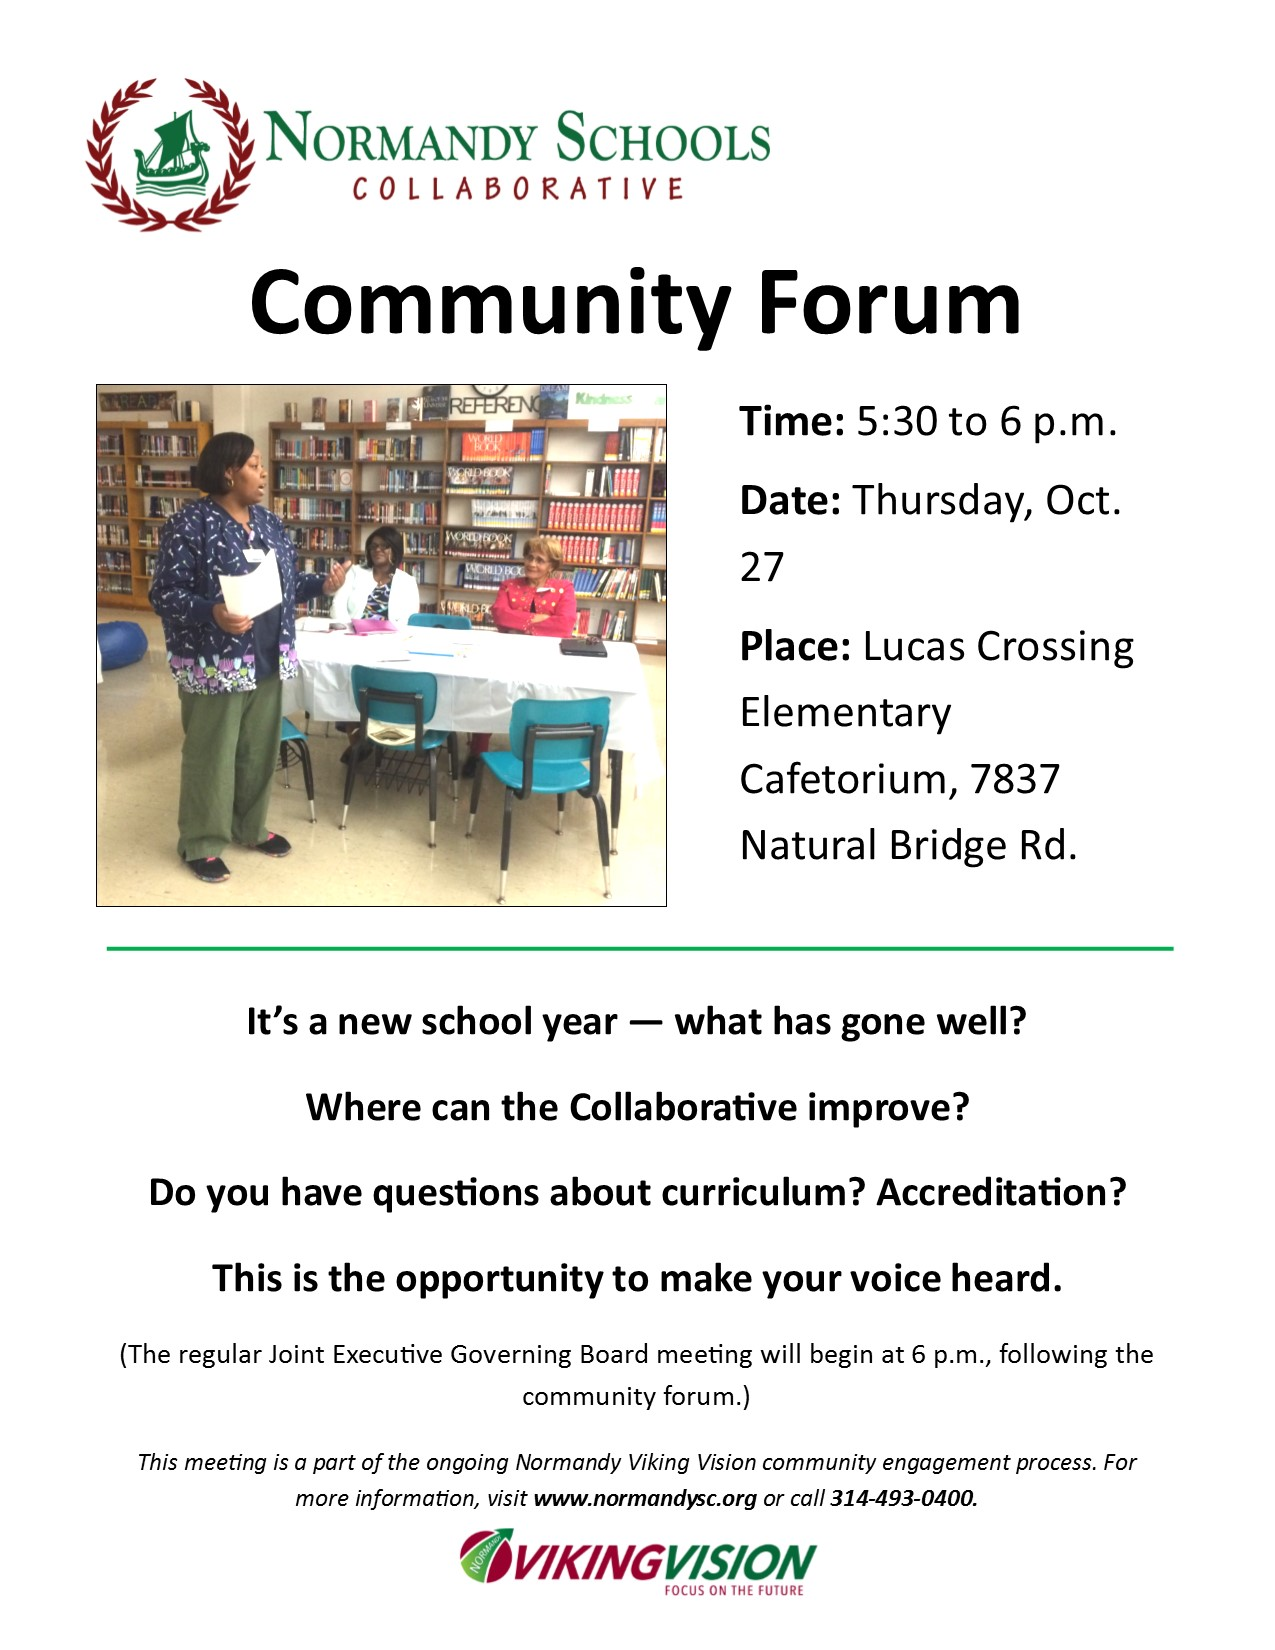 community forum flier